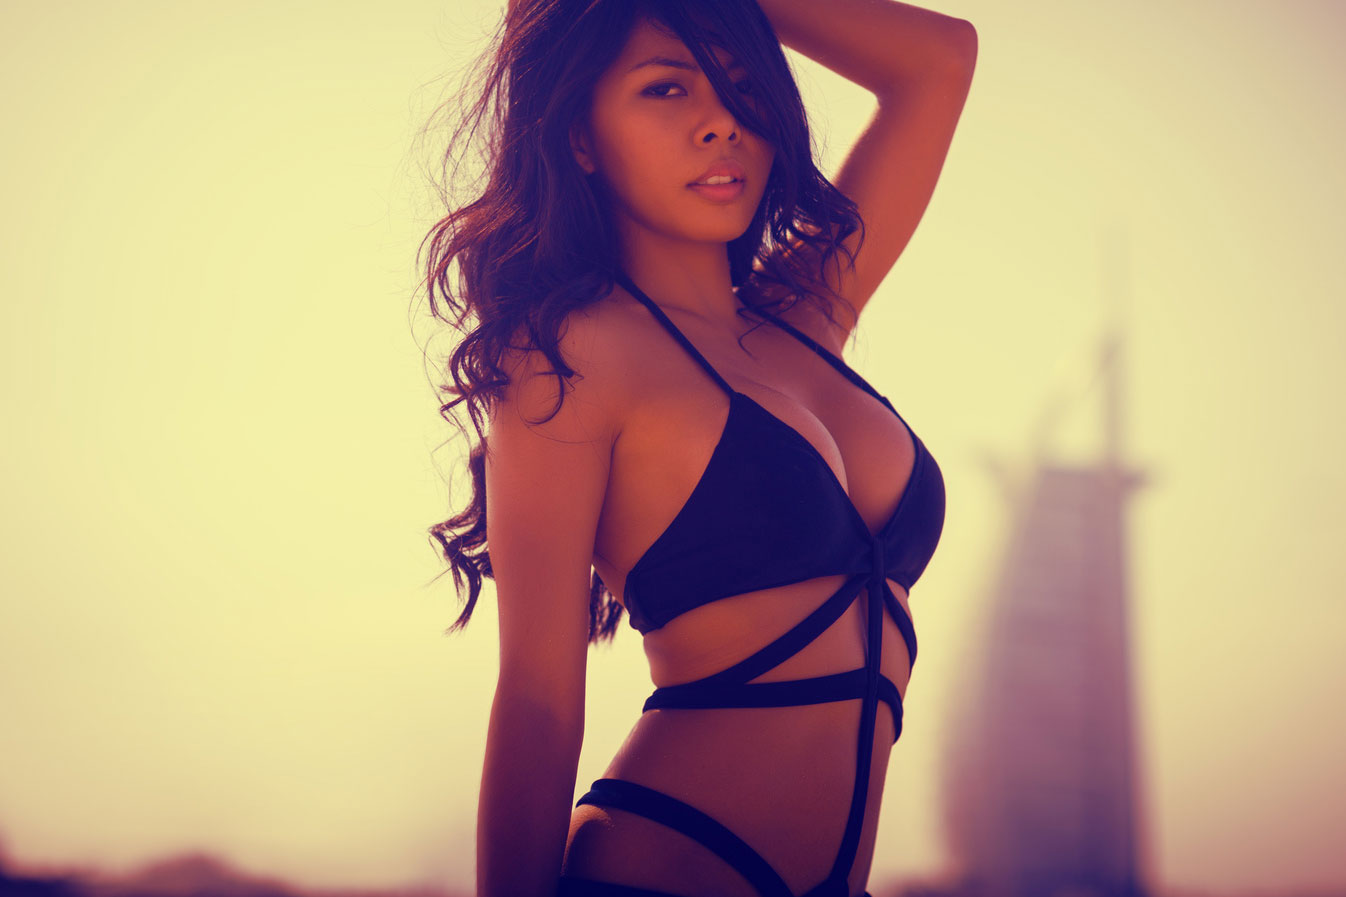 Find sex & dating in Dubai today